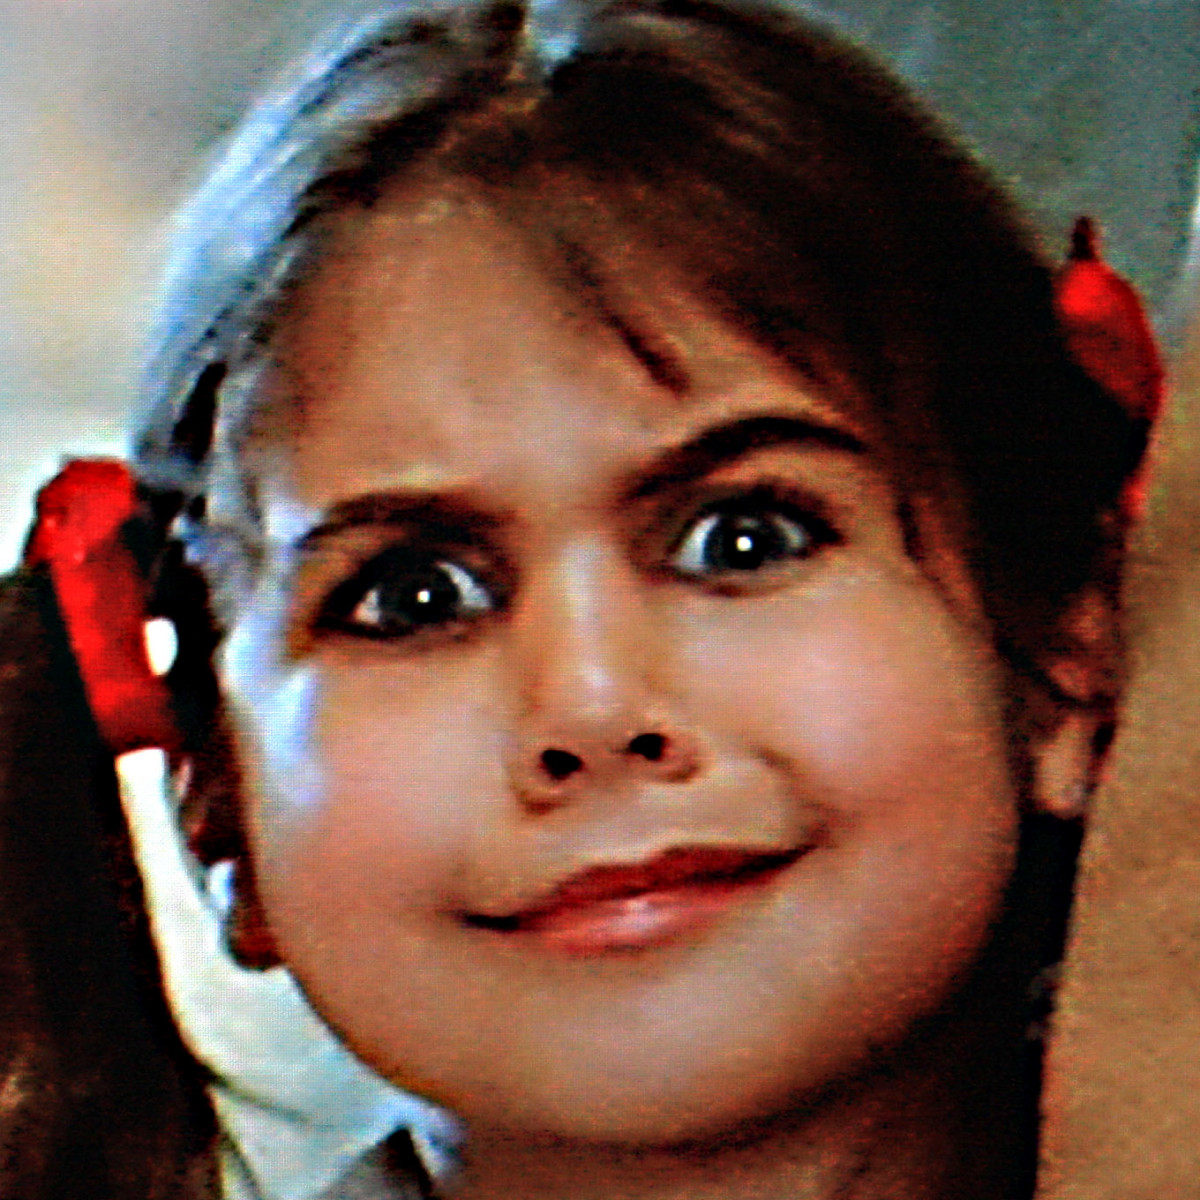 Not really relevant to the film's plot, but just one of the curious onlookers at the train station was this little girl with possibly the most intense stare in movie history (but is it really cute or is it really evil - you decide)